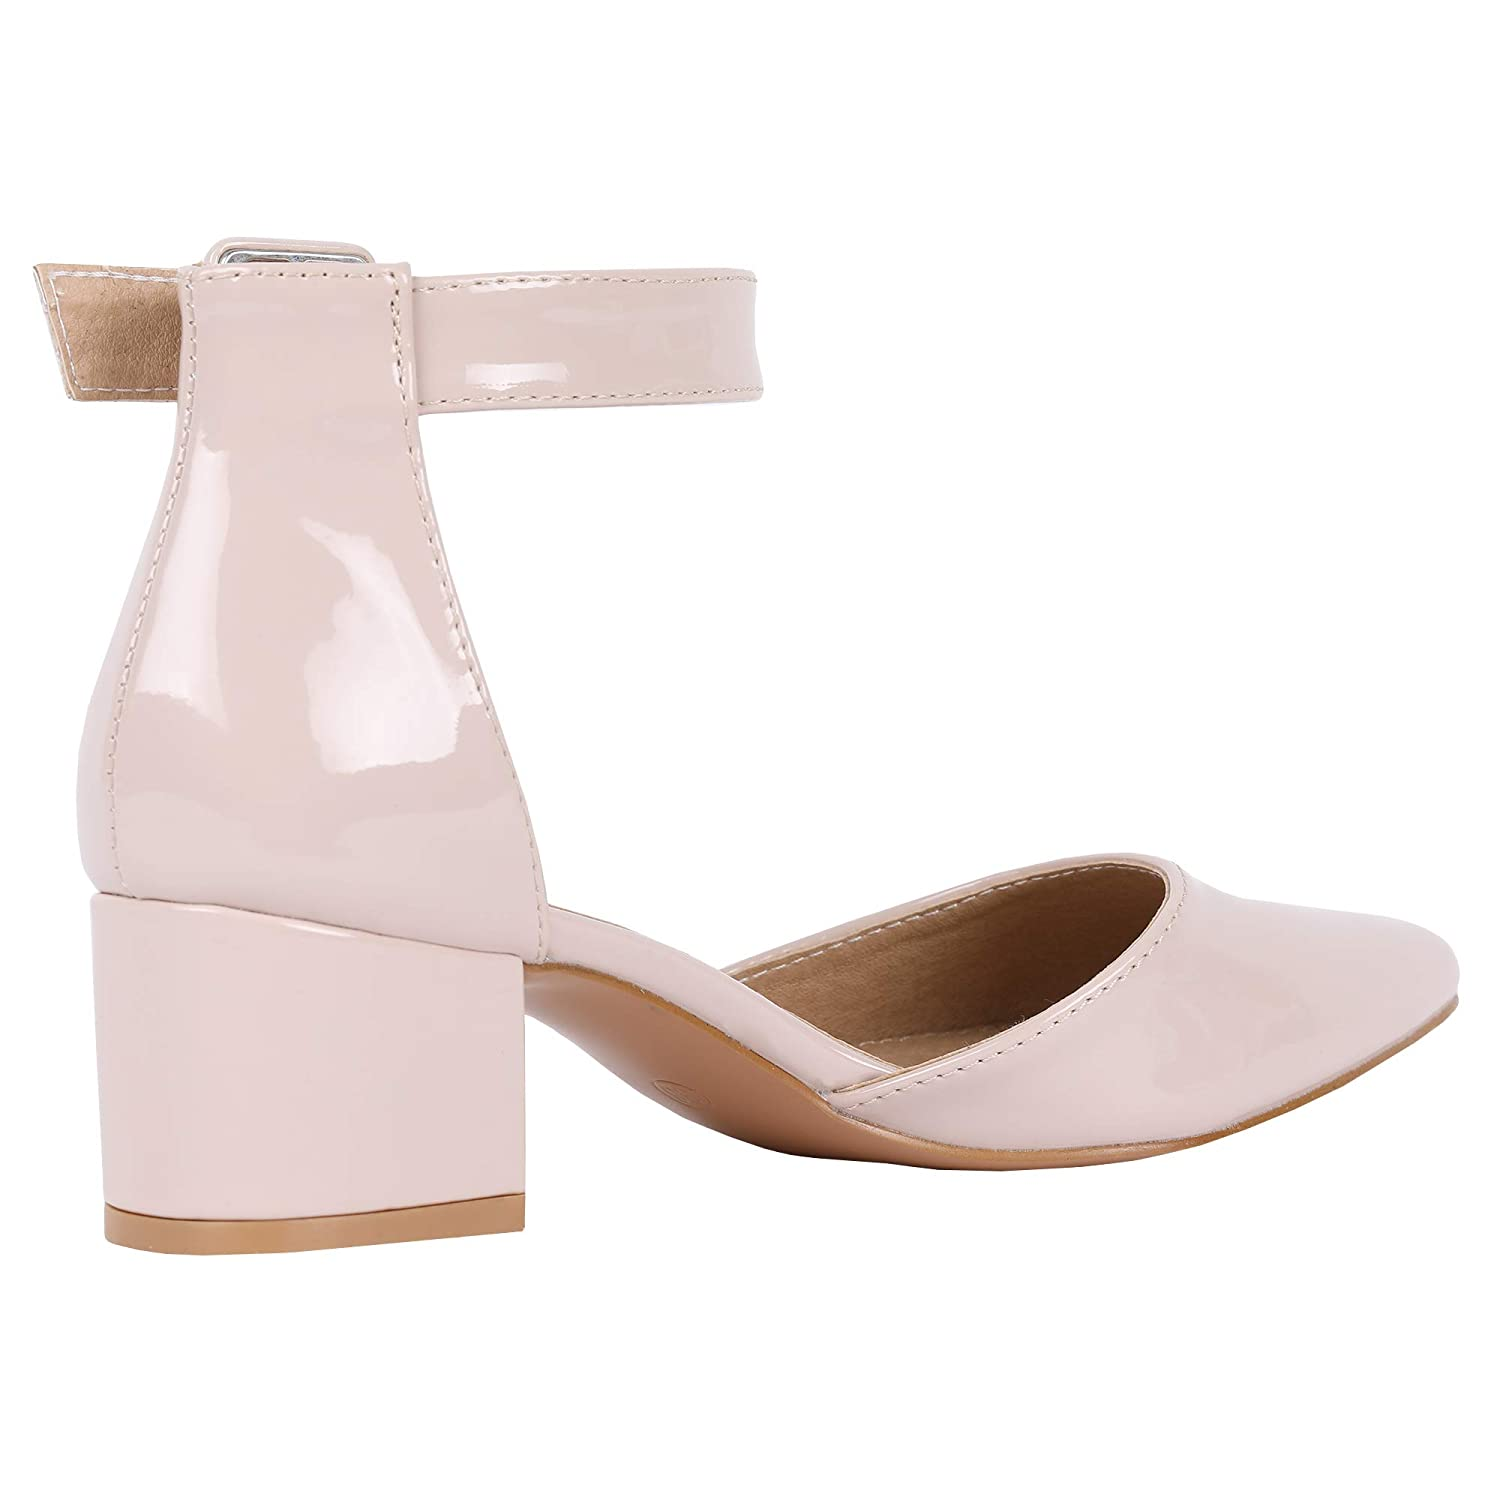 LAICIGO Women/'s Ankle Scalloped Strap Buckle Pump Sandals Pointed Toe Chunky Heeled Shoes